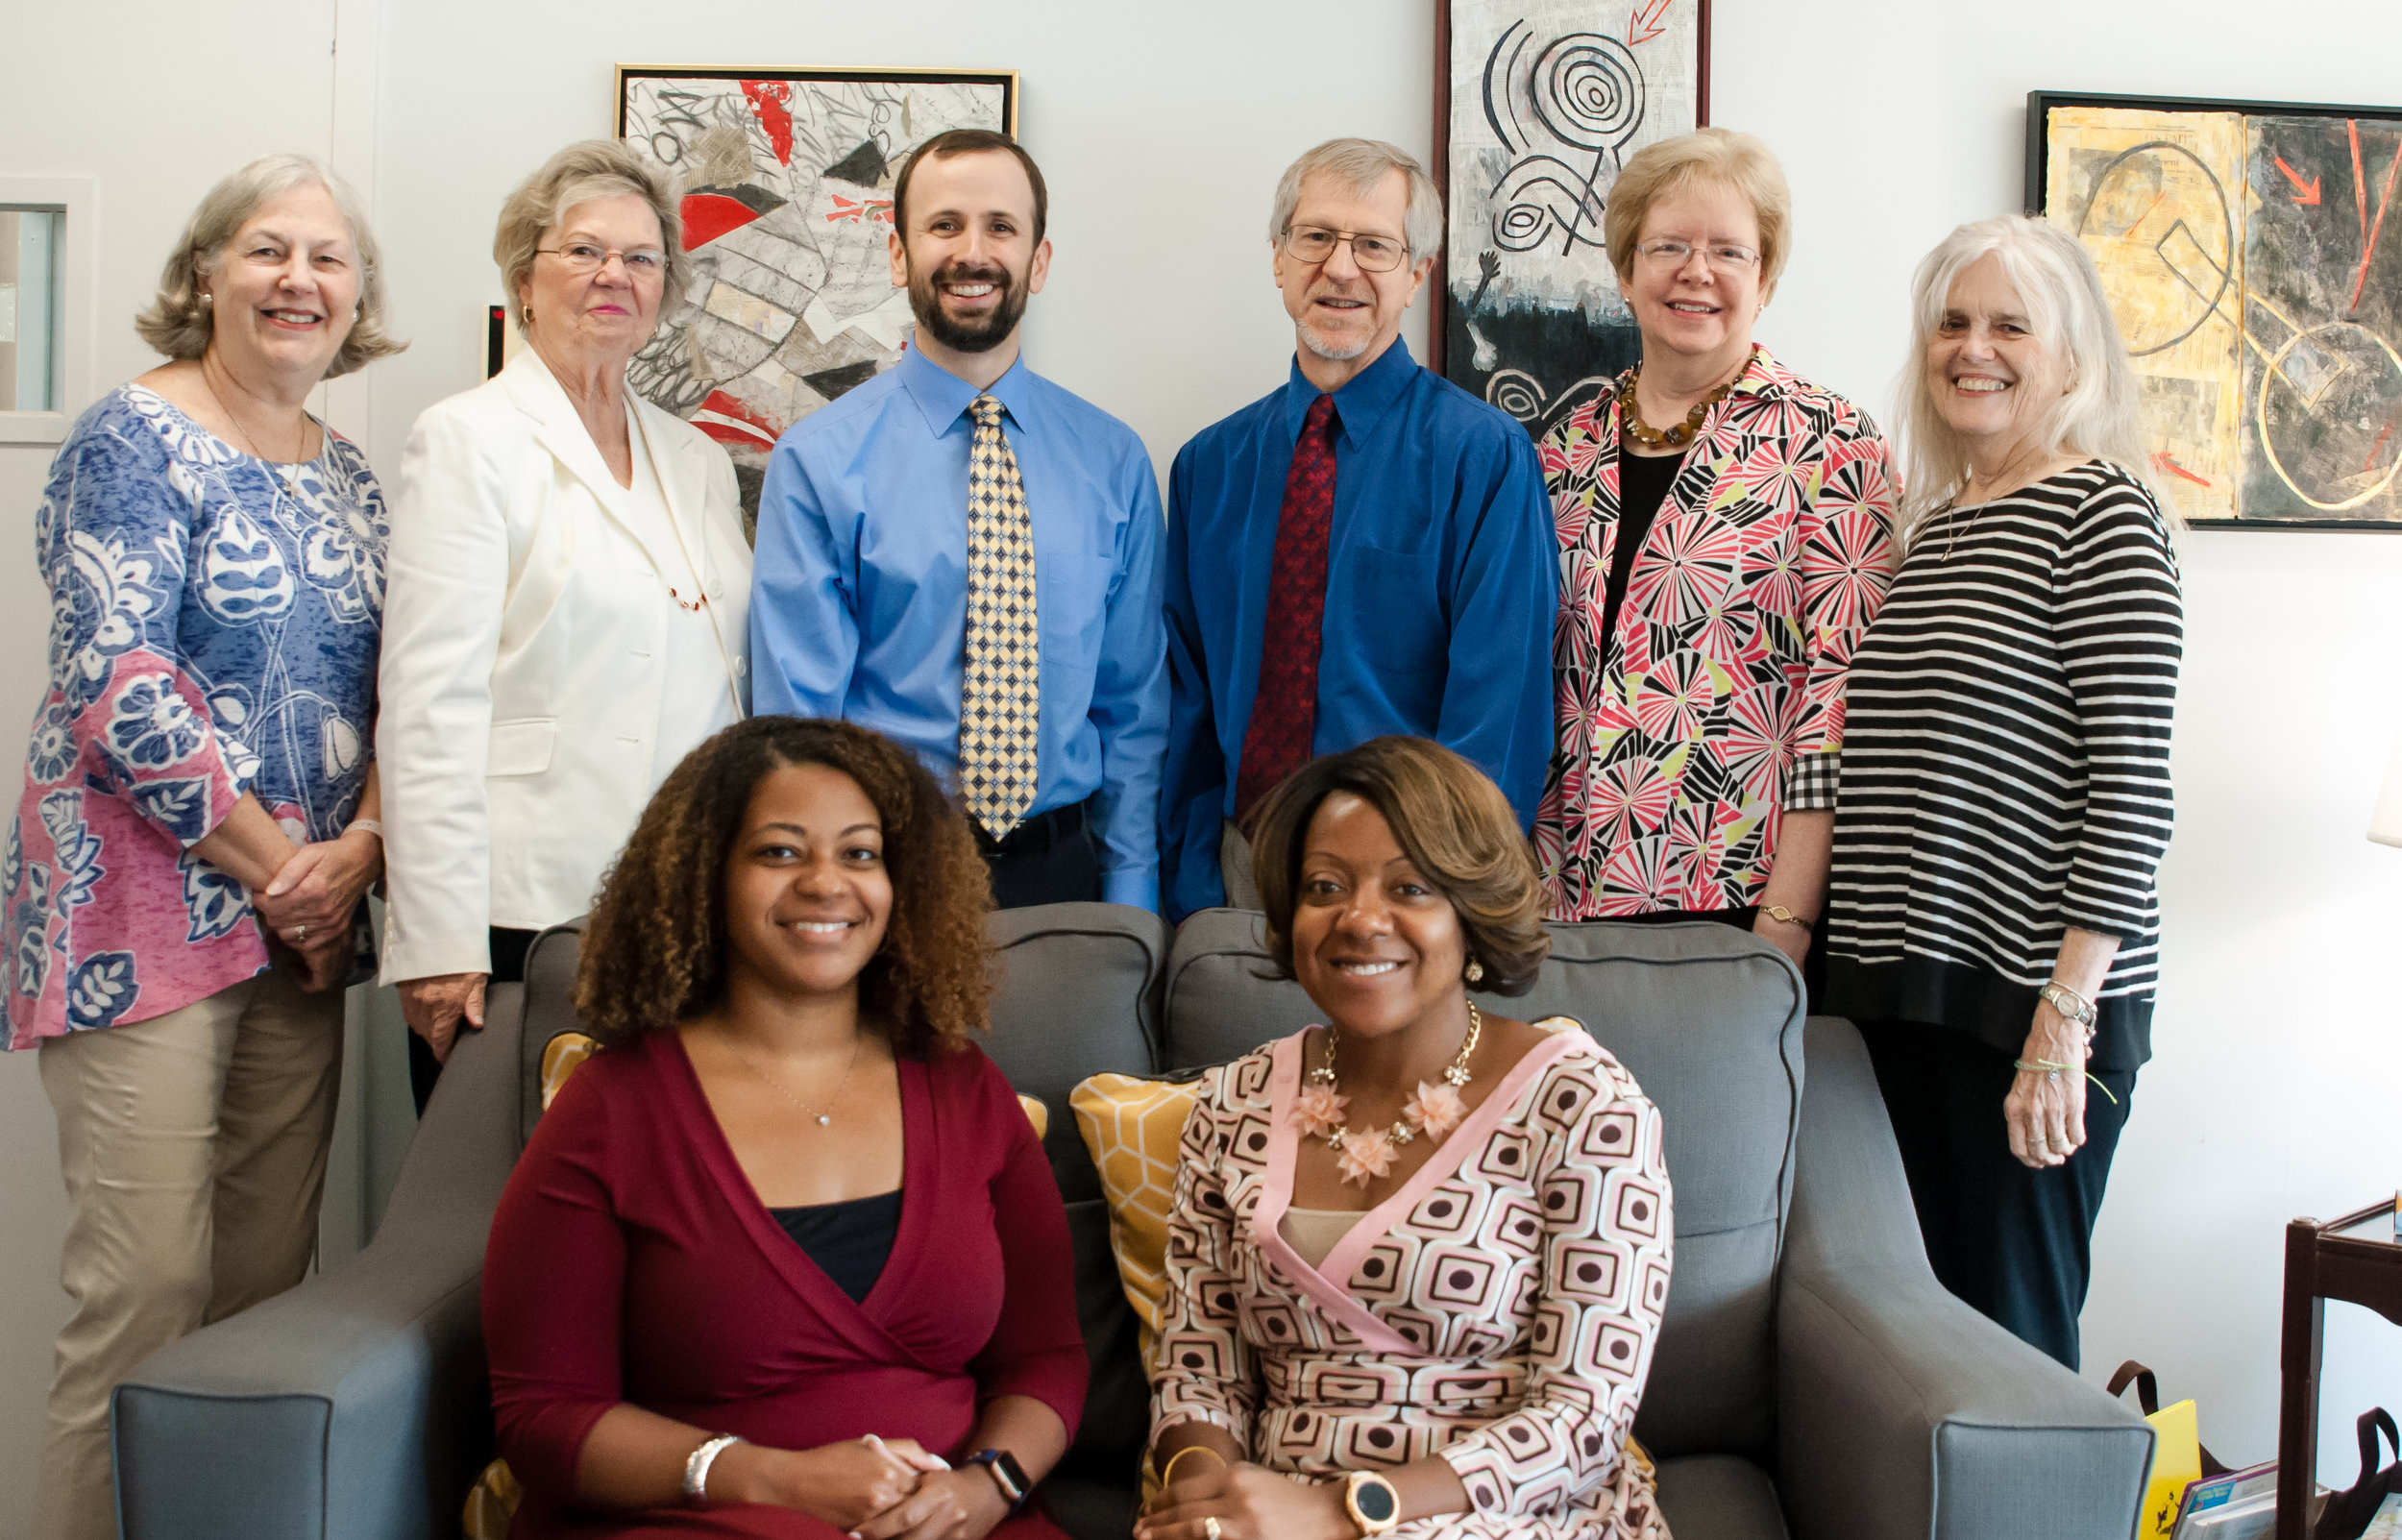 VIPCare's Board of Directors. Back row, l to r: Anne Peck, Carol B. Markow, Board President Robert F. Brown, Executive Director Douglas M. Thorpe, Melinda South, and Frances Broaddus Crutchfield Front Row seated: Board Vice President Jessica Young Brown and Janiel Youngblood Absent: Sister Cora Marie Billings, The Rev. Dr. Daniel G. Bagby, Sean Hamon, Gwen Lingerfelt (photo July 24, 2019)